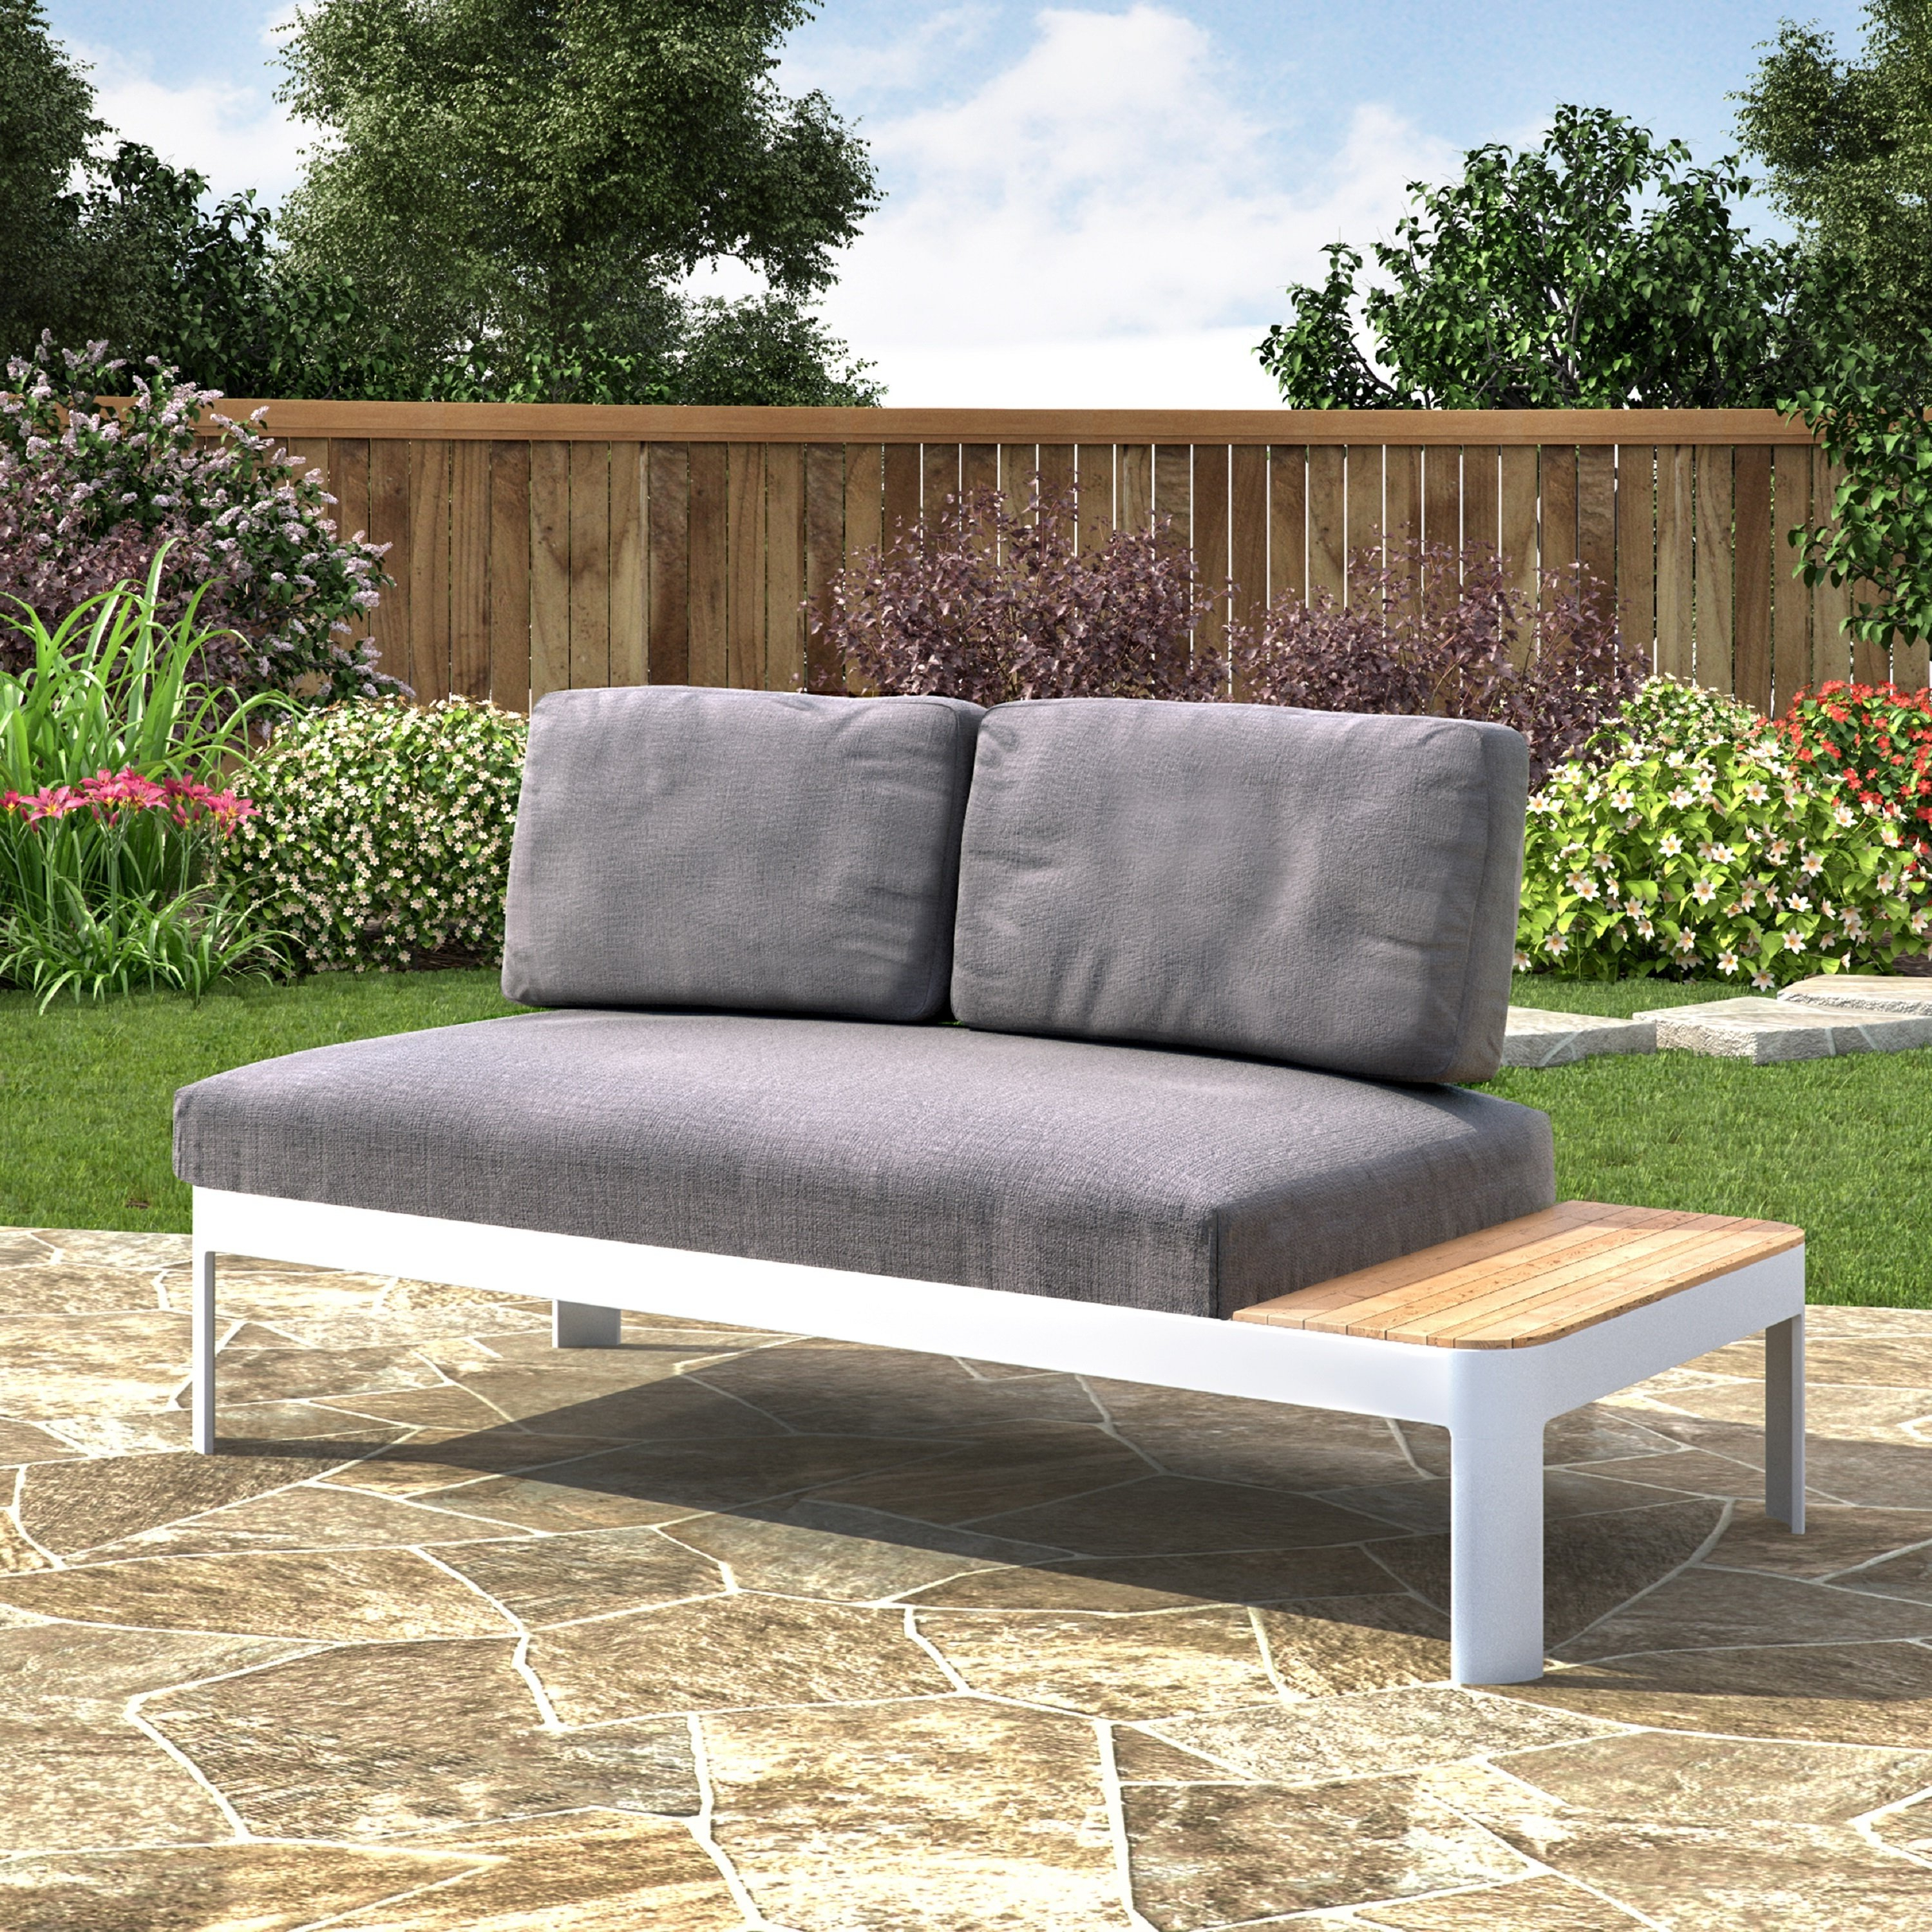 Favorite Harper Down Oversized Sofa Chairs Intended For Shop Harper Blvd Camelia Aluminum Outdoor Convertible Lounger (Gallery 20 of 20)